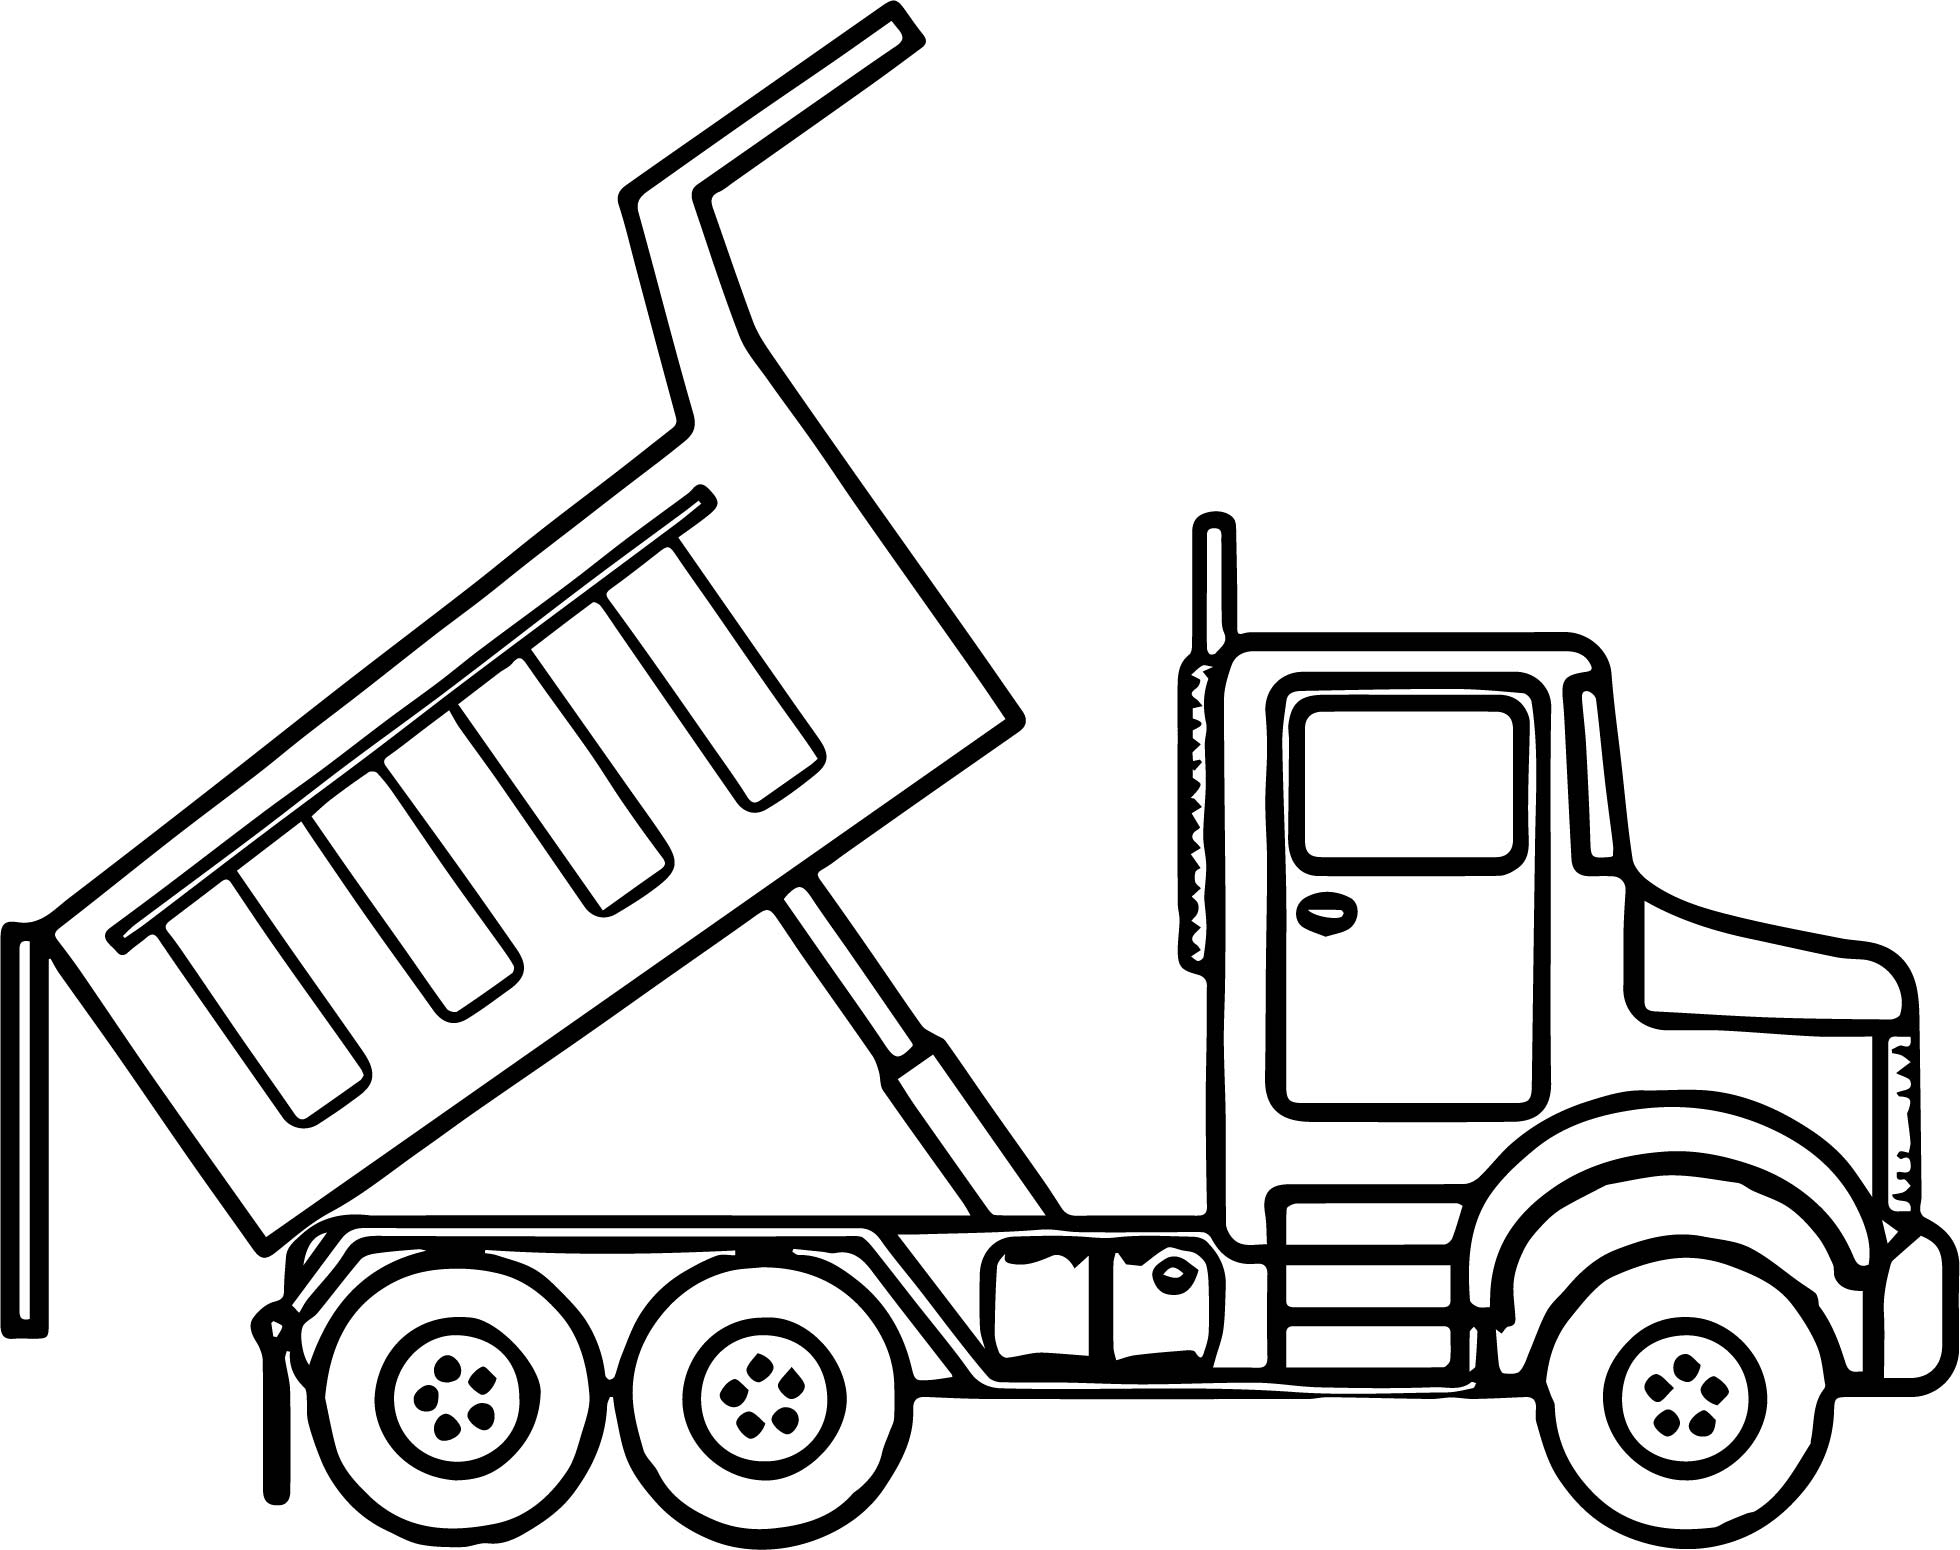 coloring truck pictures semi truck coloring pages to download and print for free coloring truck pictures